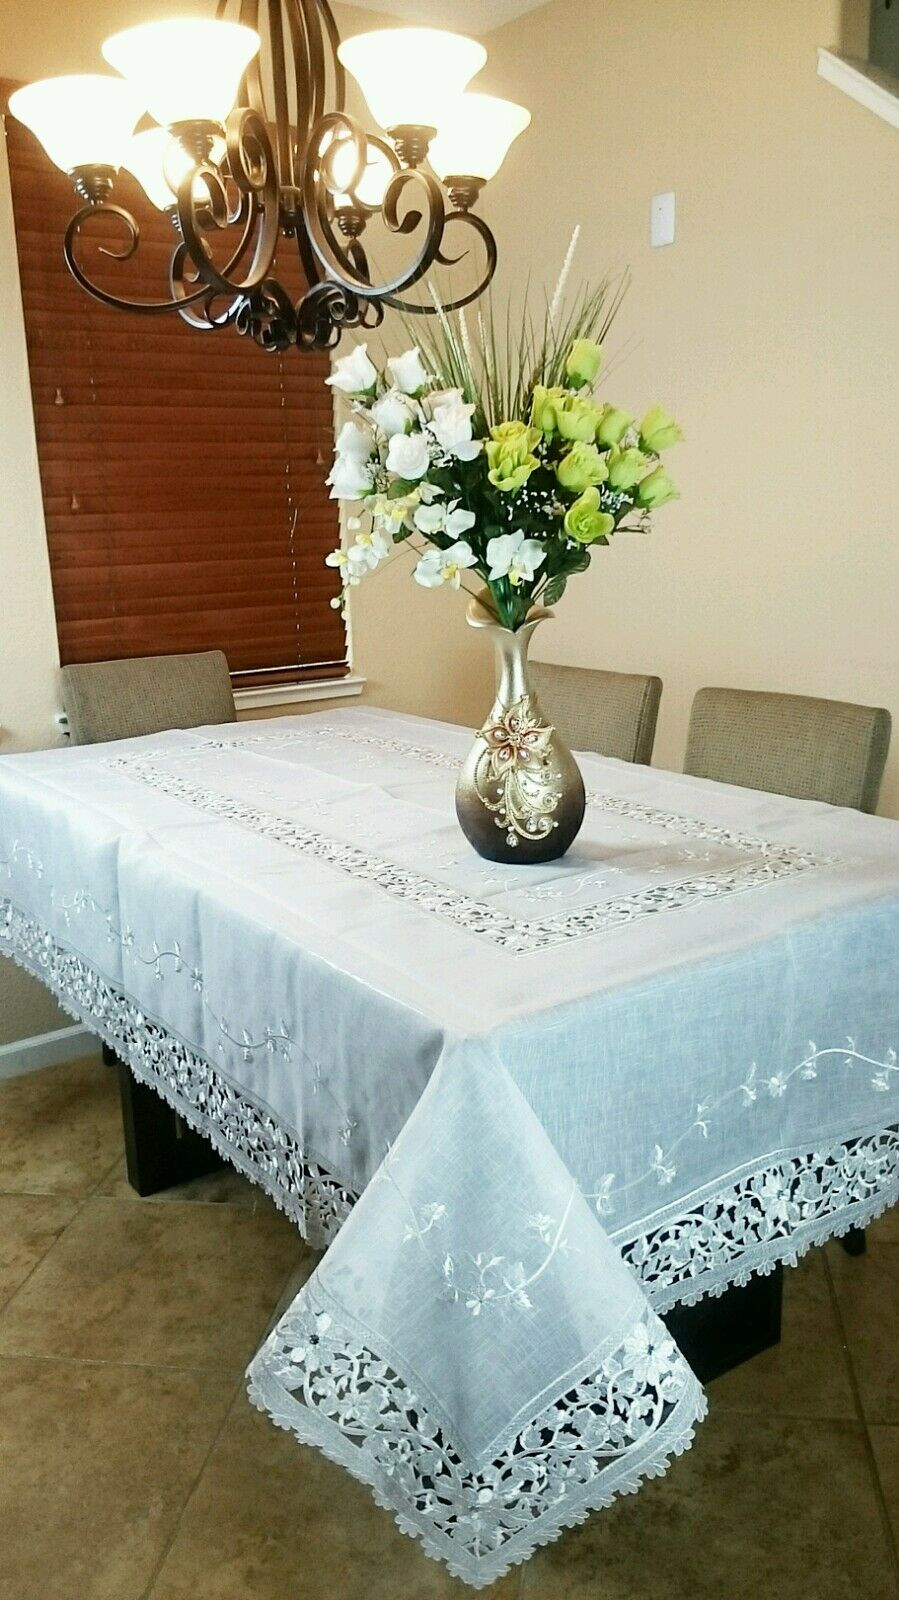 72x180  Embroiderouge Embroidery Handmade Jeweled Organza Tablecloth Elegantlinen